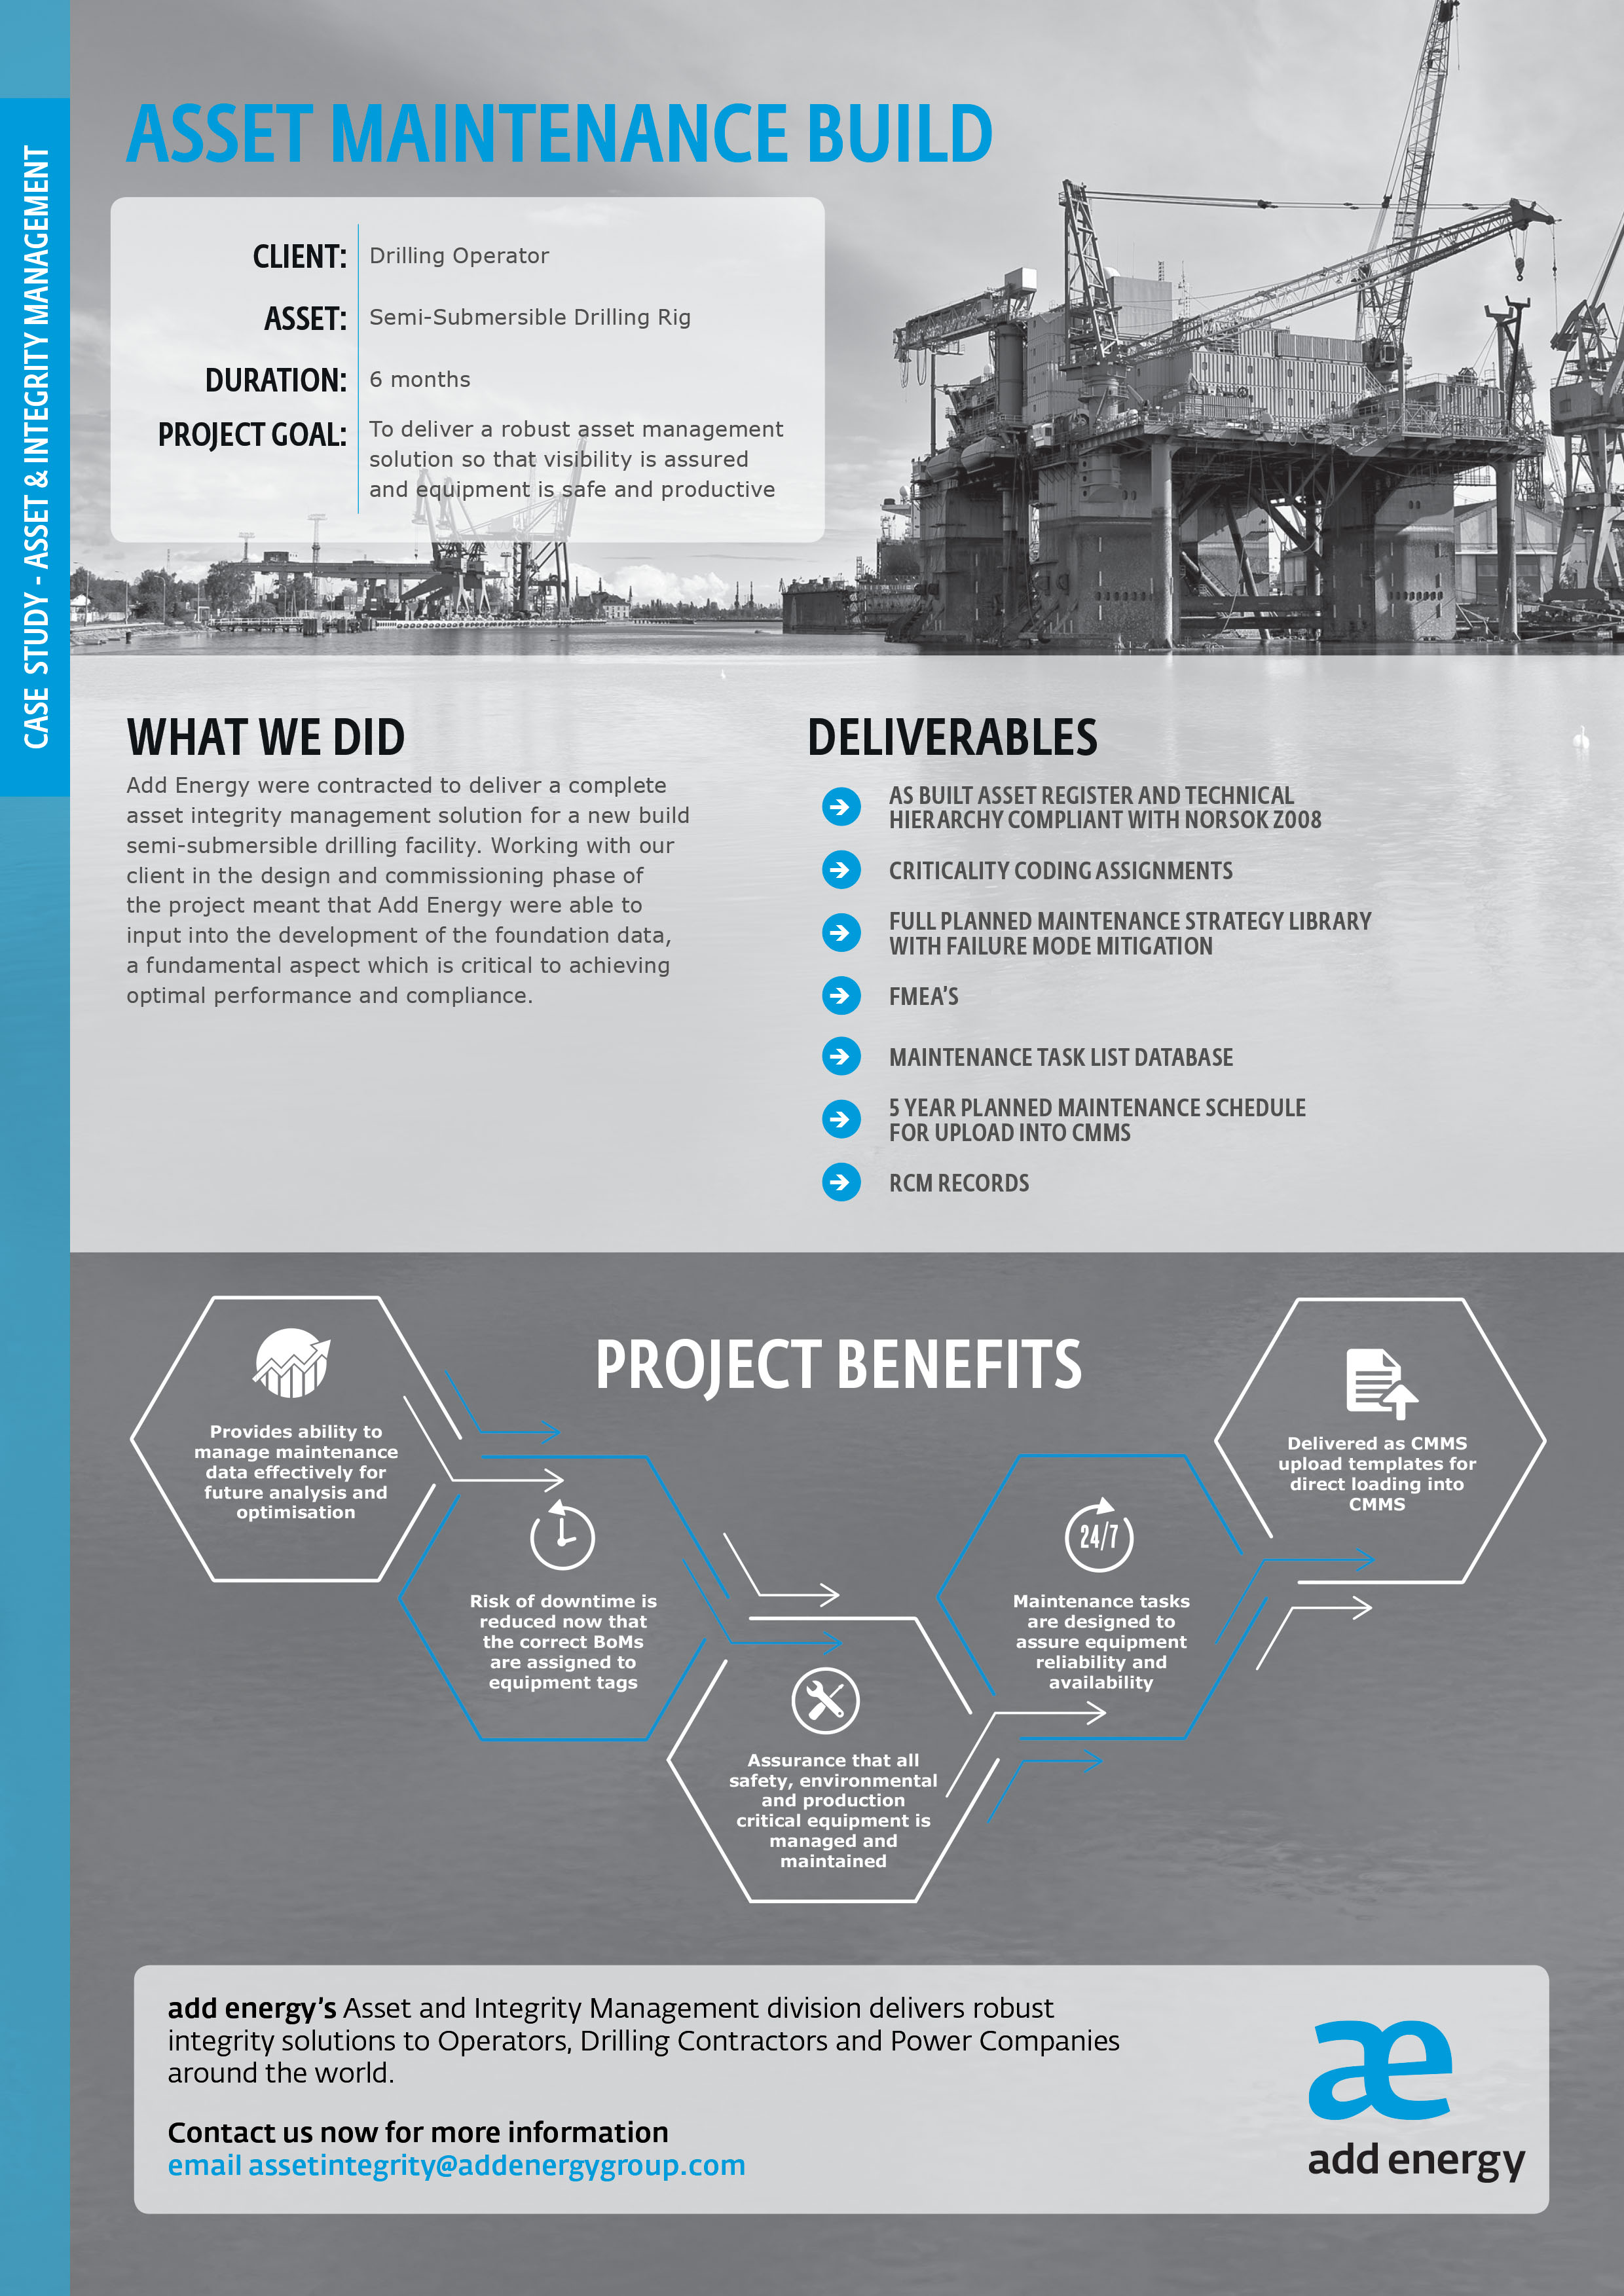 Click here to view Asset Maintenance Build - Case Study